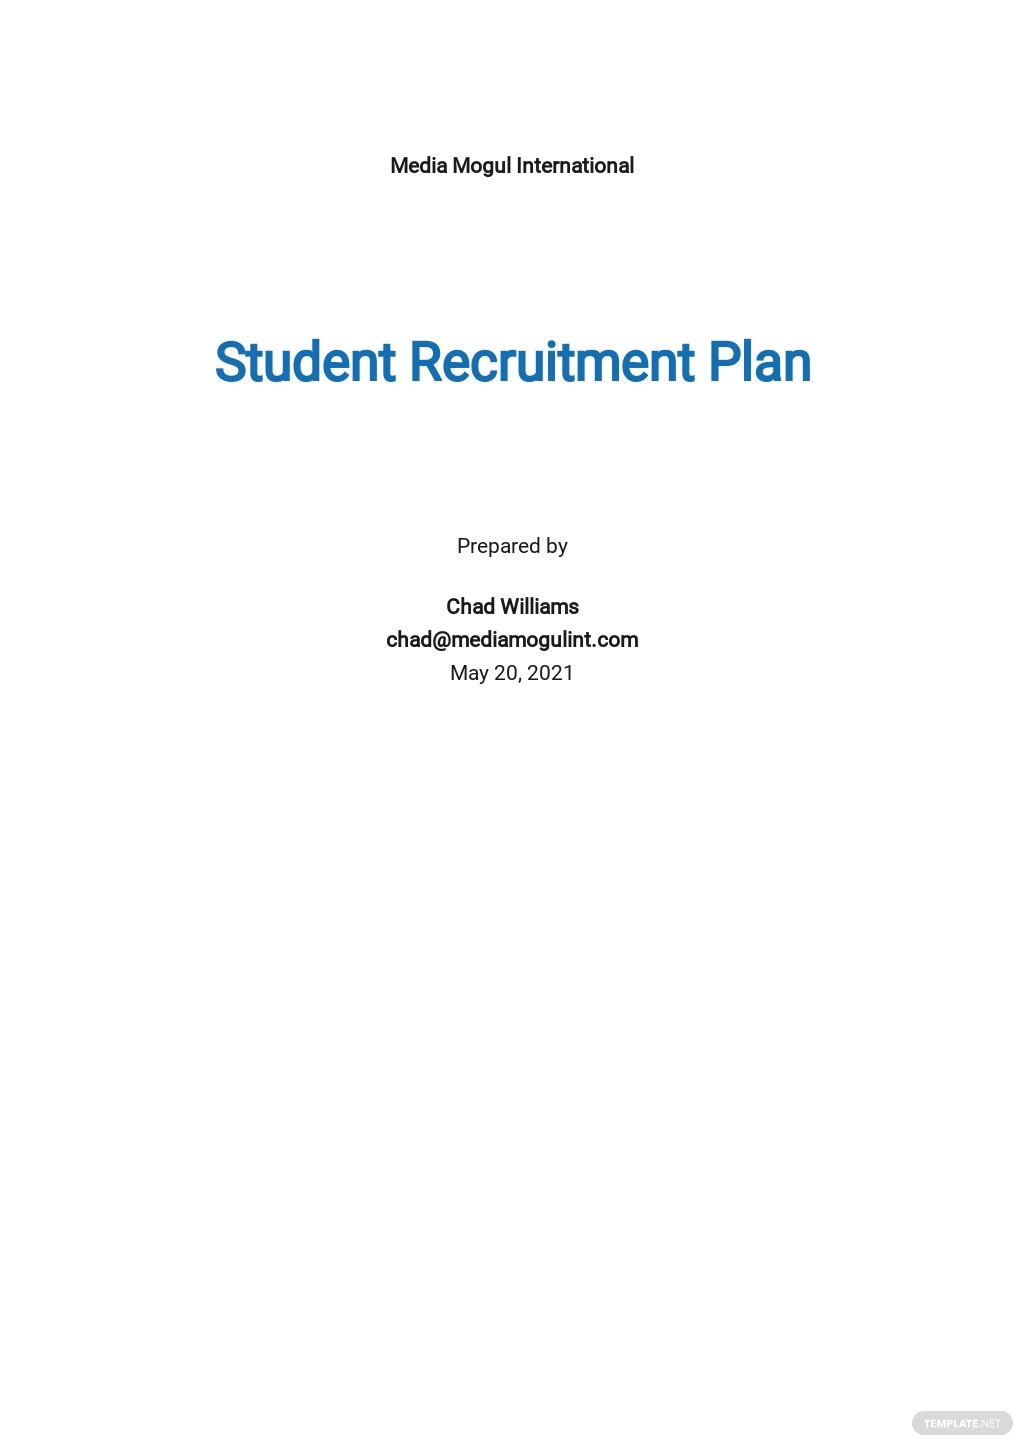 Student Recruitment Plan Template